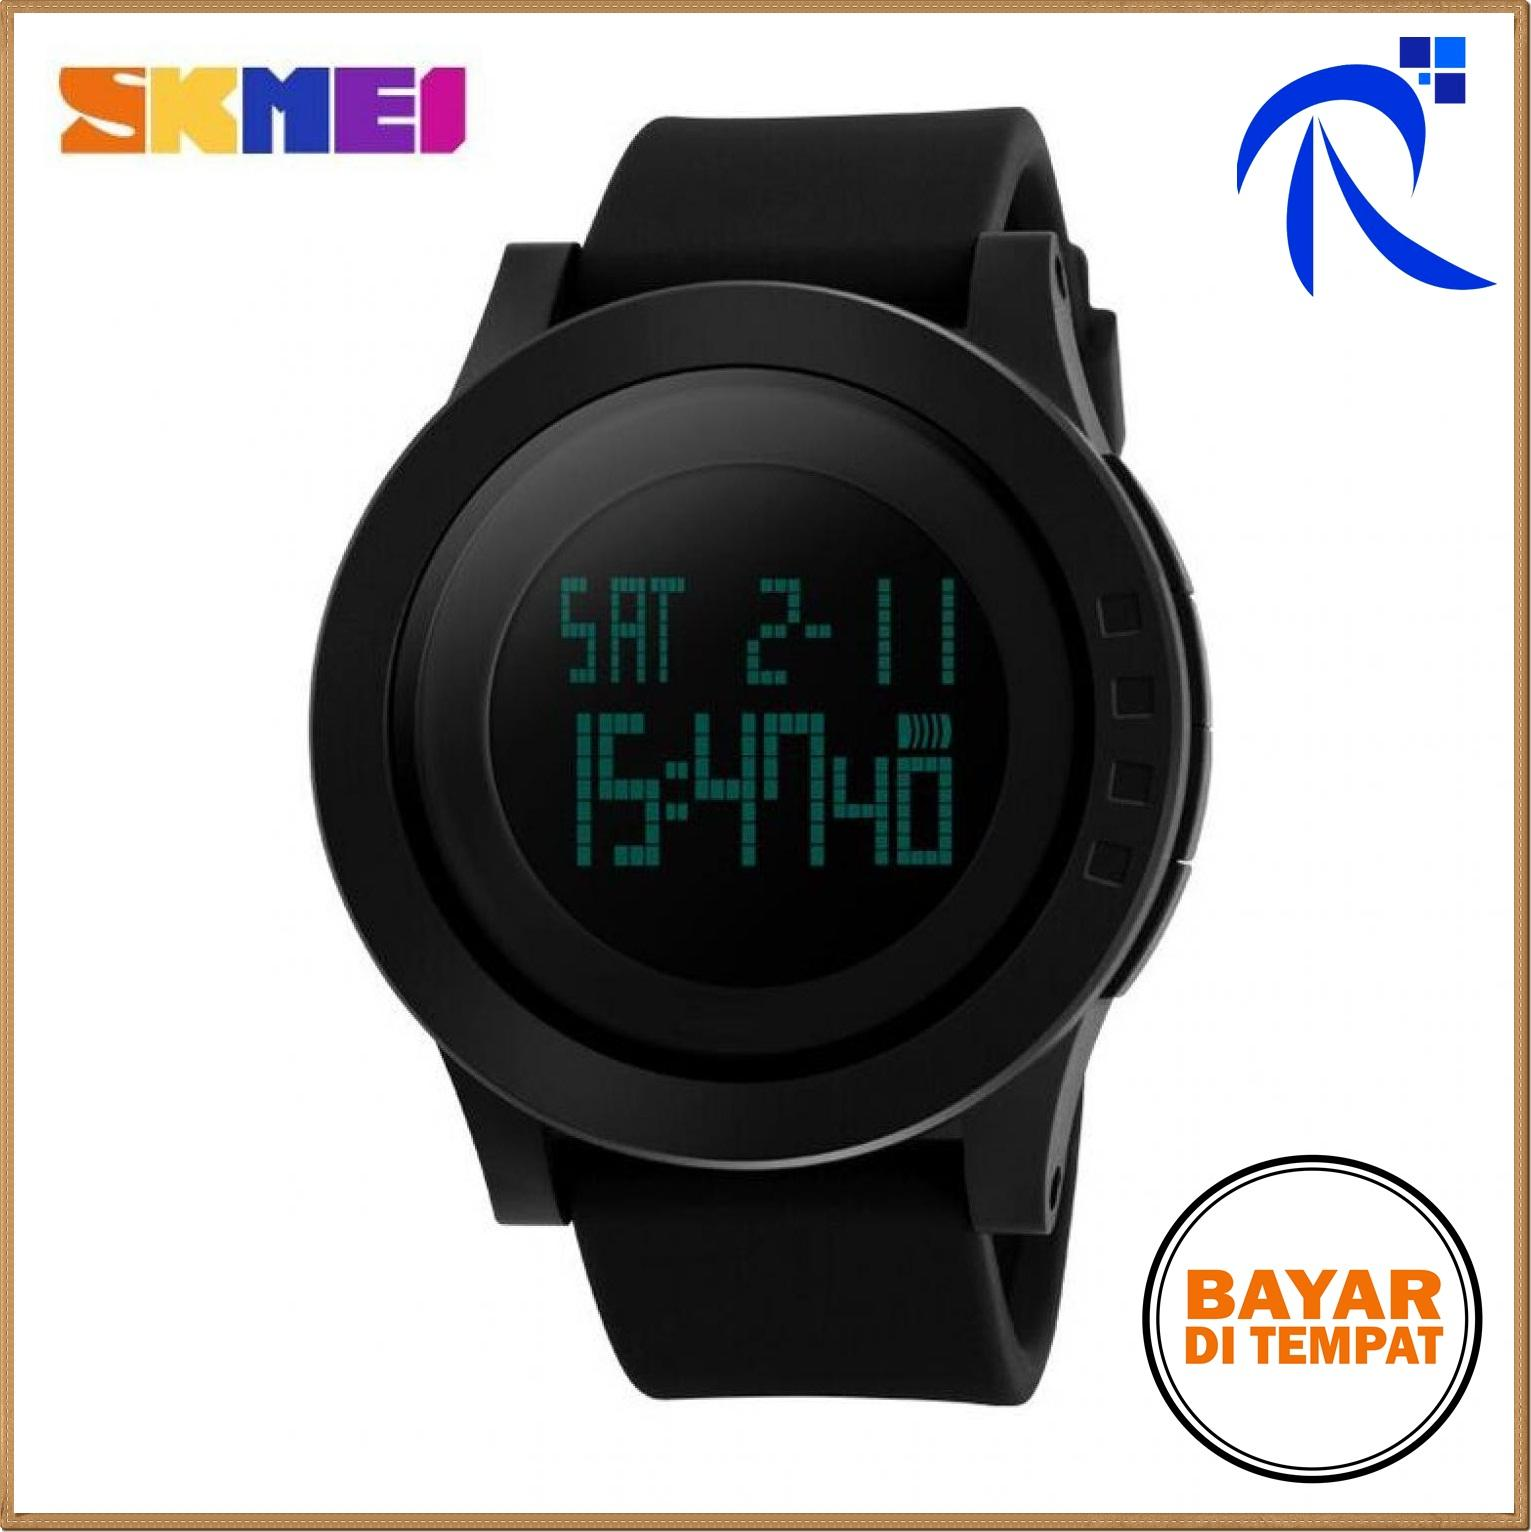 Skmei Trendy Men Led Display Watch Water Resistant 50m Dg1142 - Black / Hitam / Pink / Merah Muda / Blue / Biru / Green / Hijau / Purple / Ungu Jam Tangan Cowok Cowo Pria Trendy Stylish Keren Kekinian Berkualitas Original FREE ONGKIR